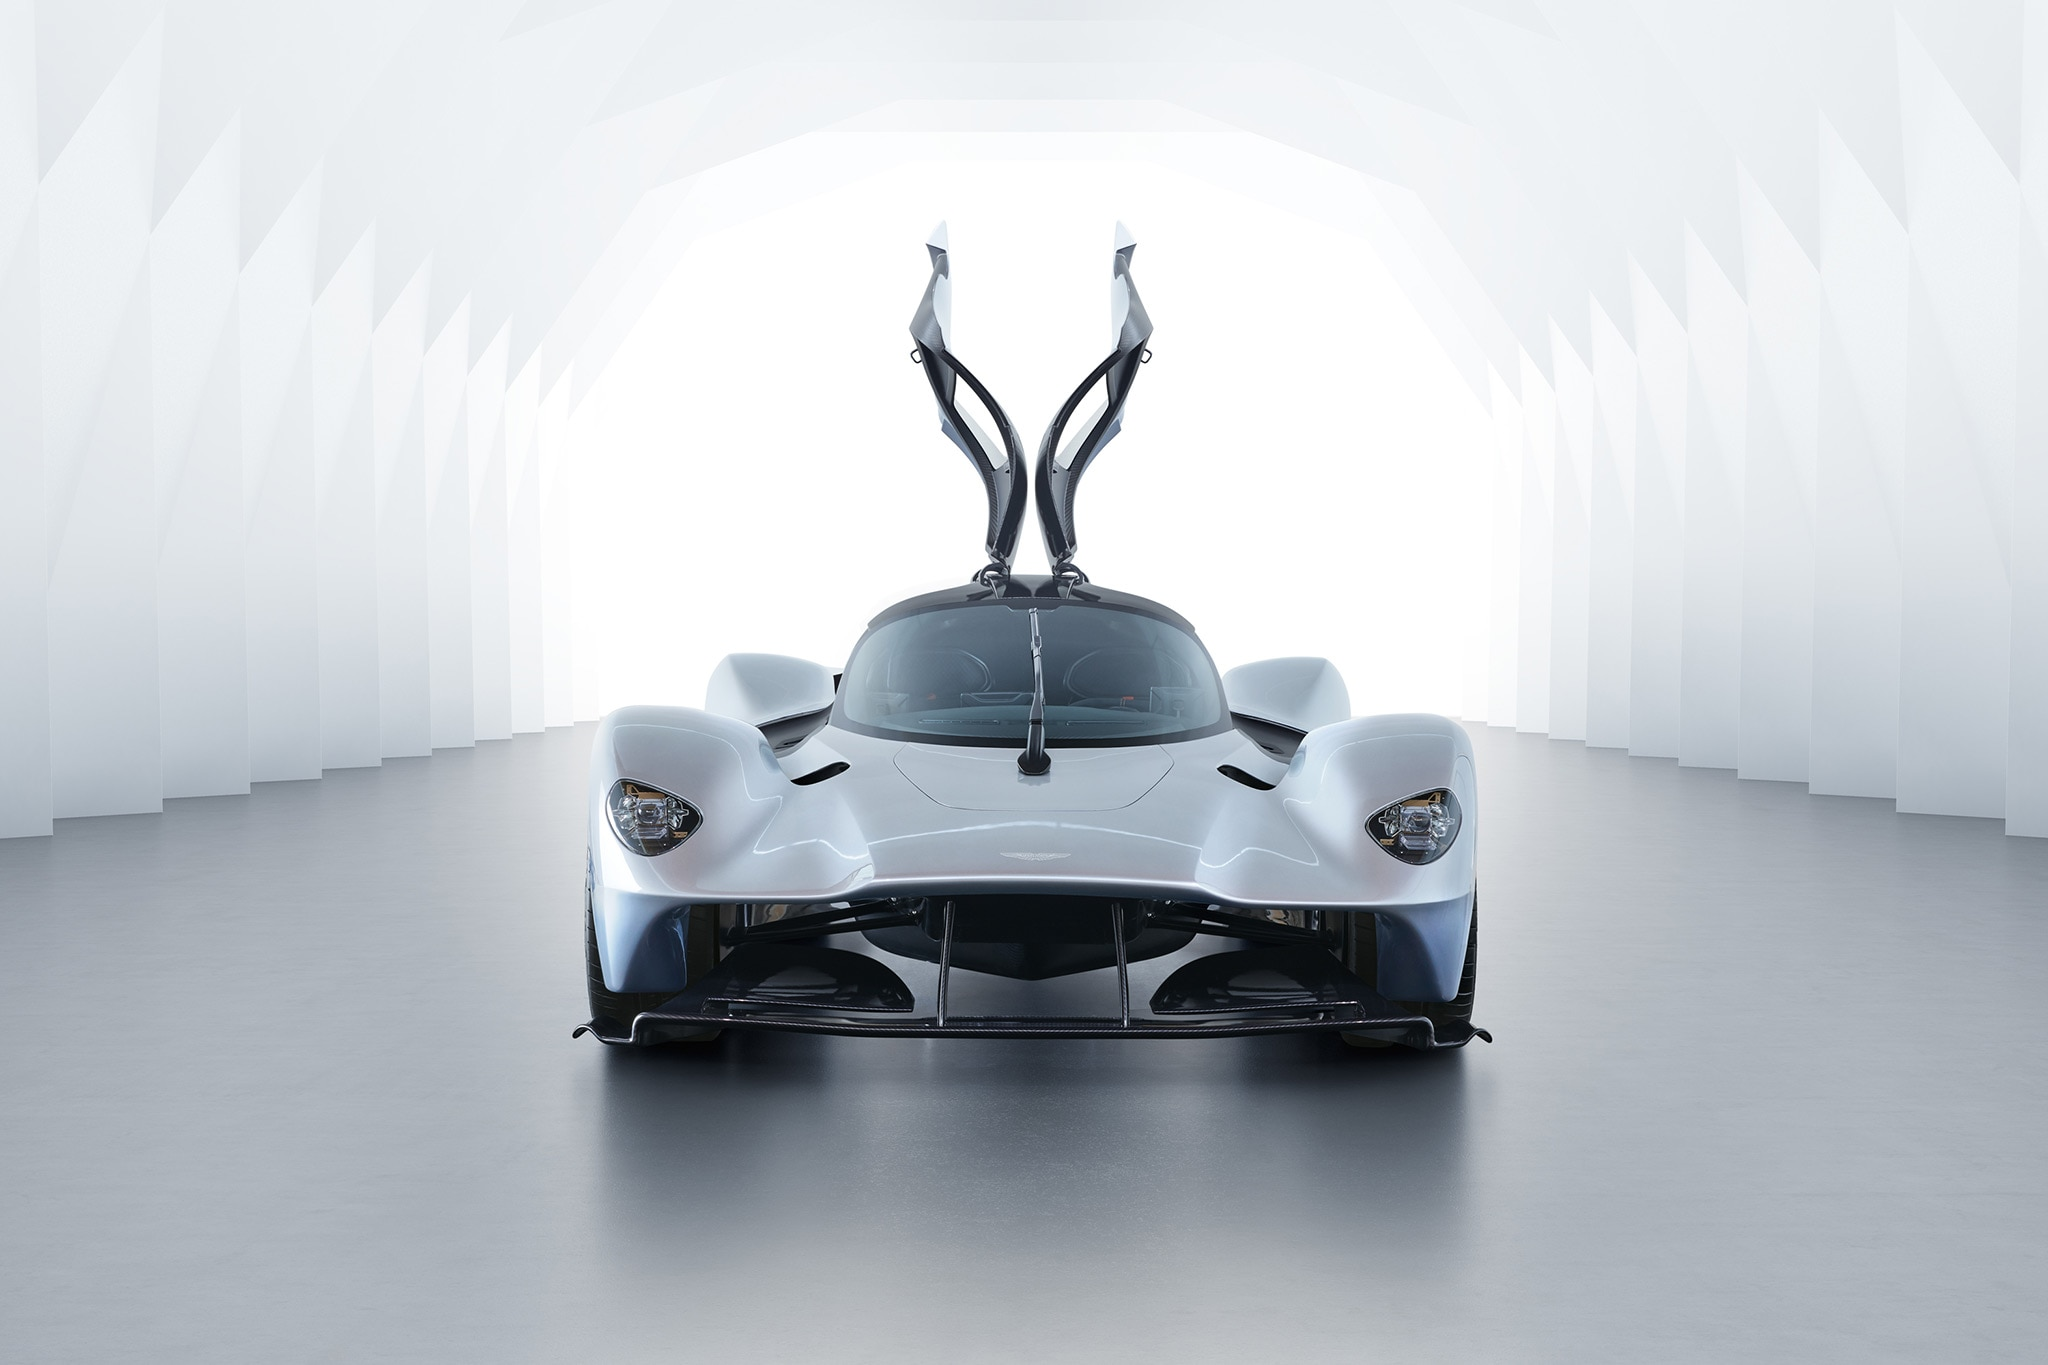 Aston Martin Valkyrie Hypercar REVEALED in near production guise